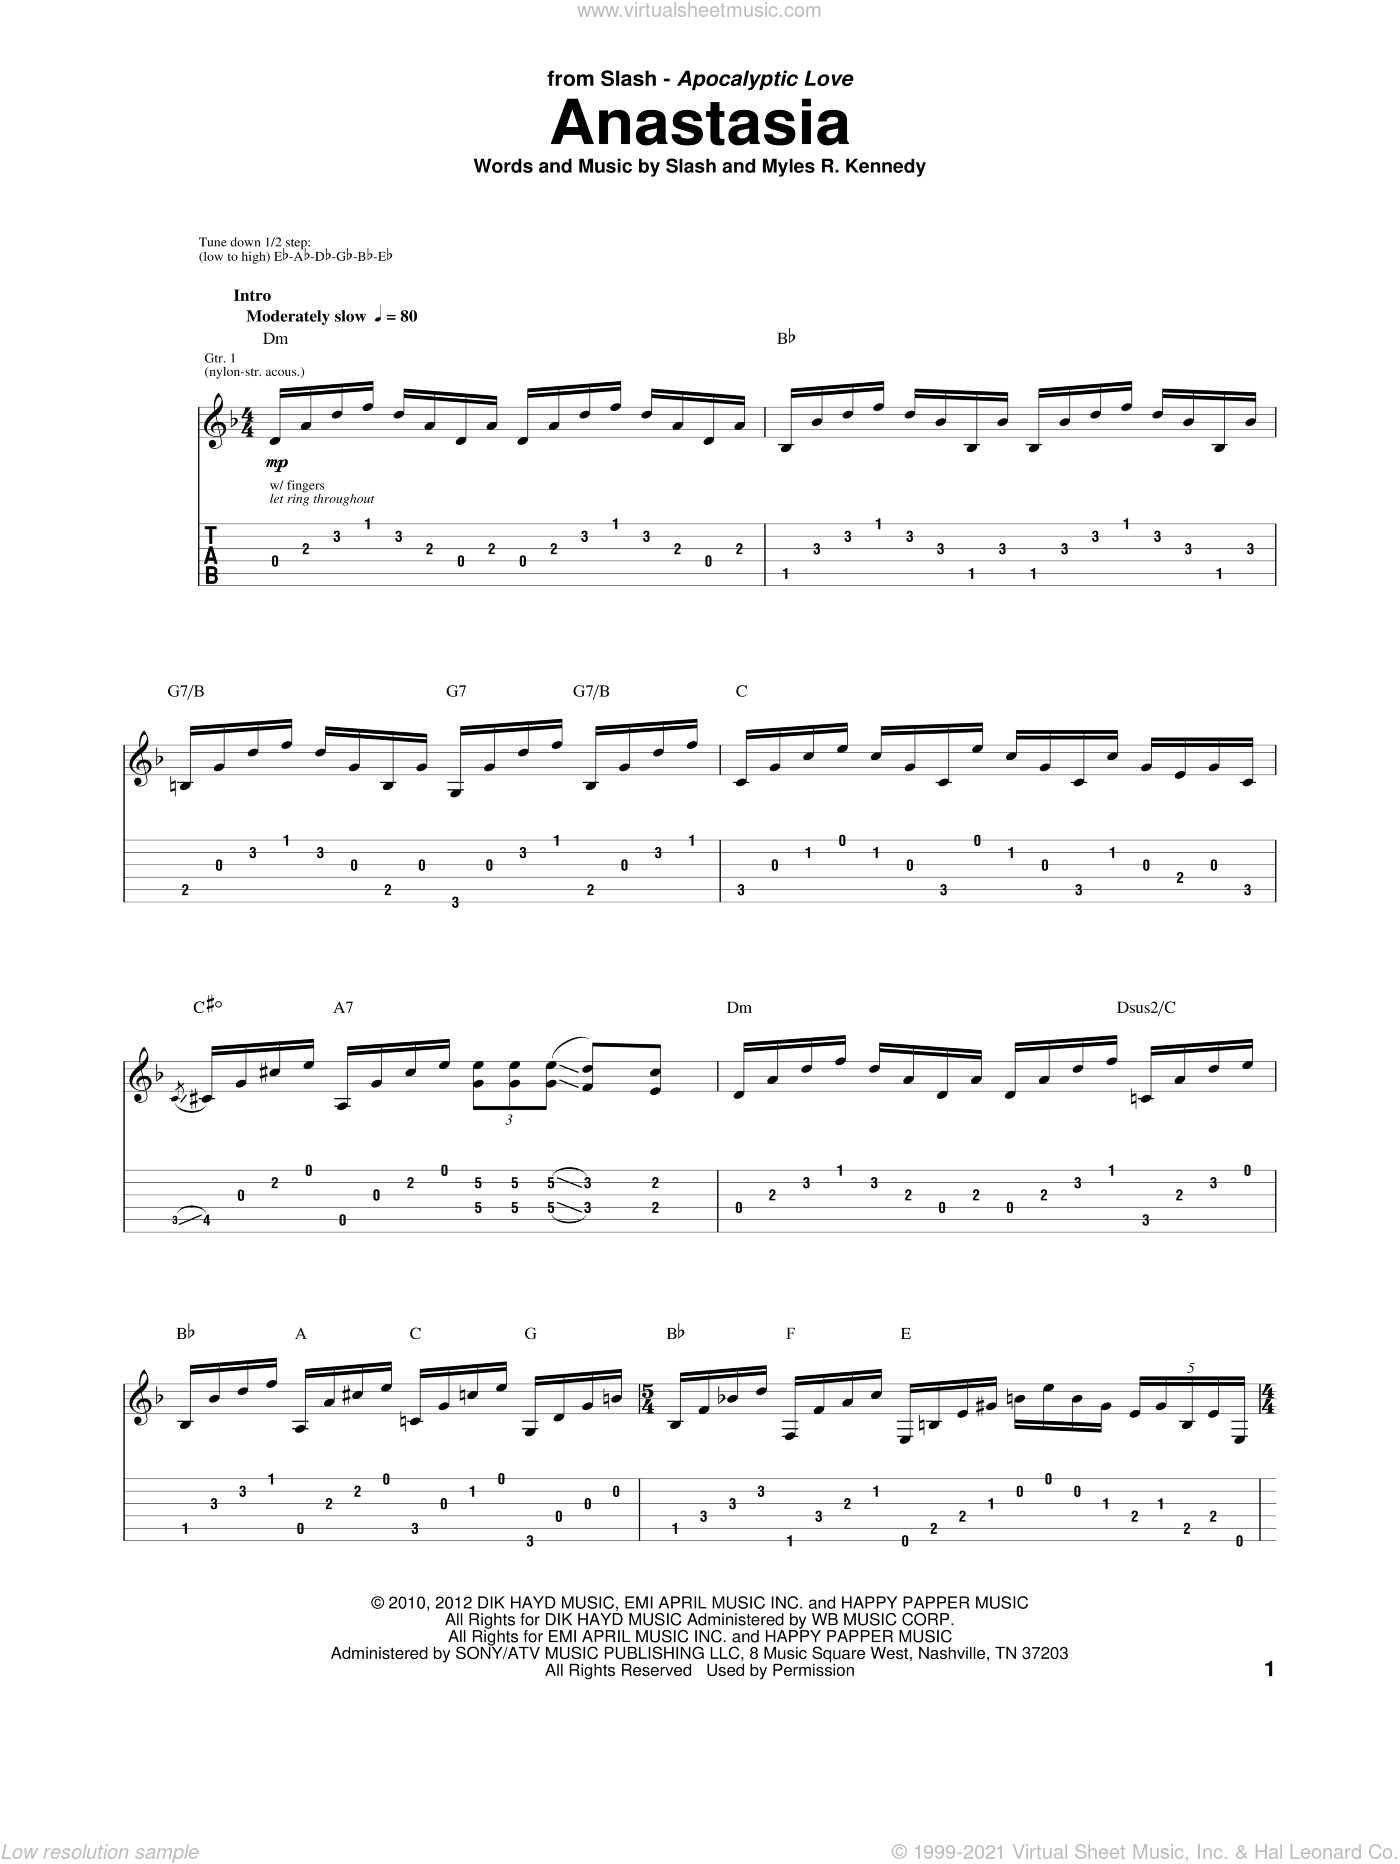 Anastasia sheet music for guitar (tablature) by Slash and Myles R. Kennedy, intermediate skill level